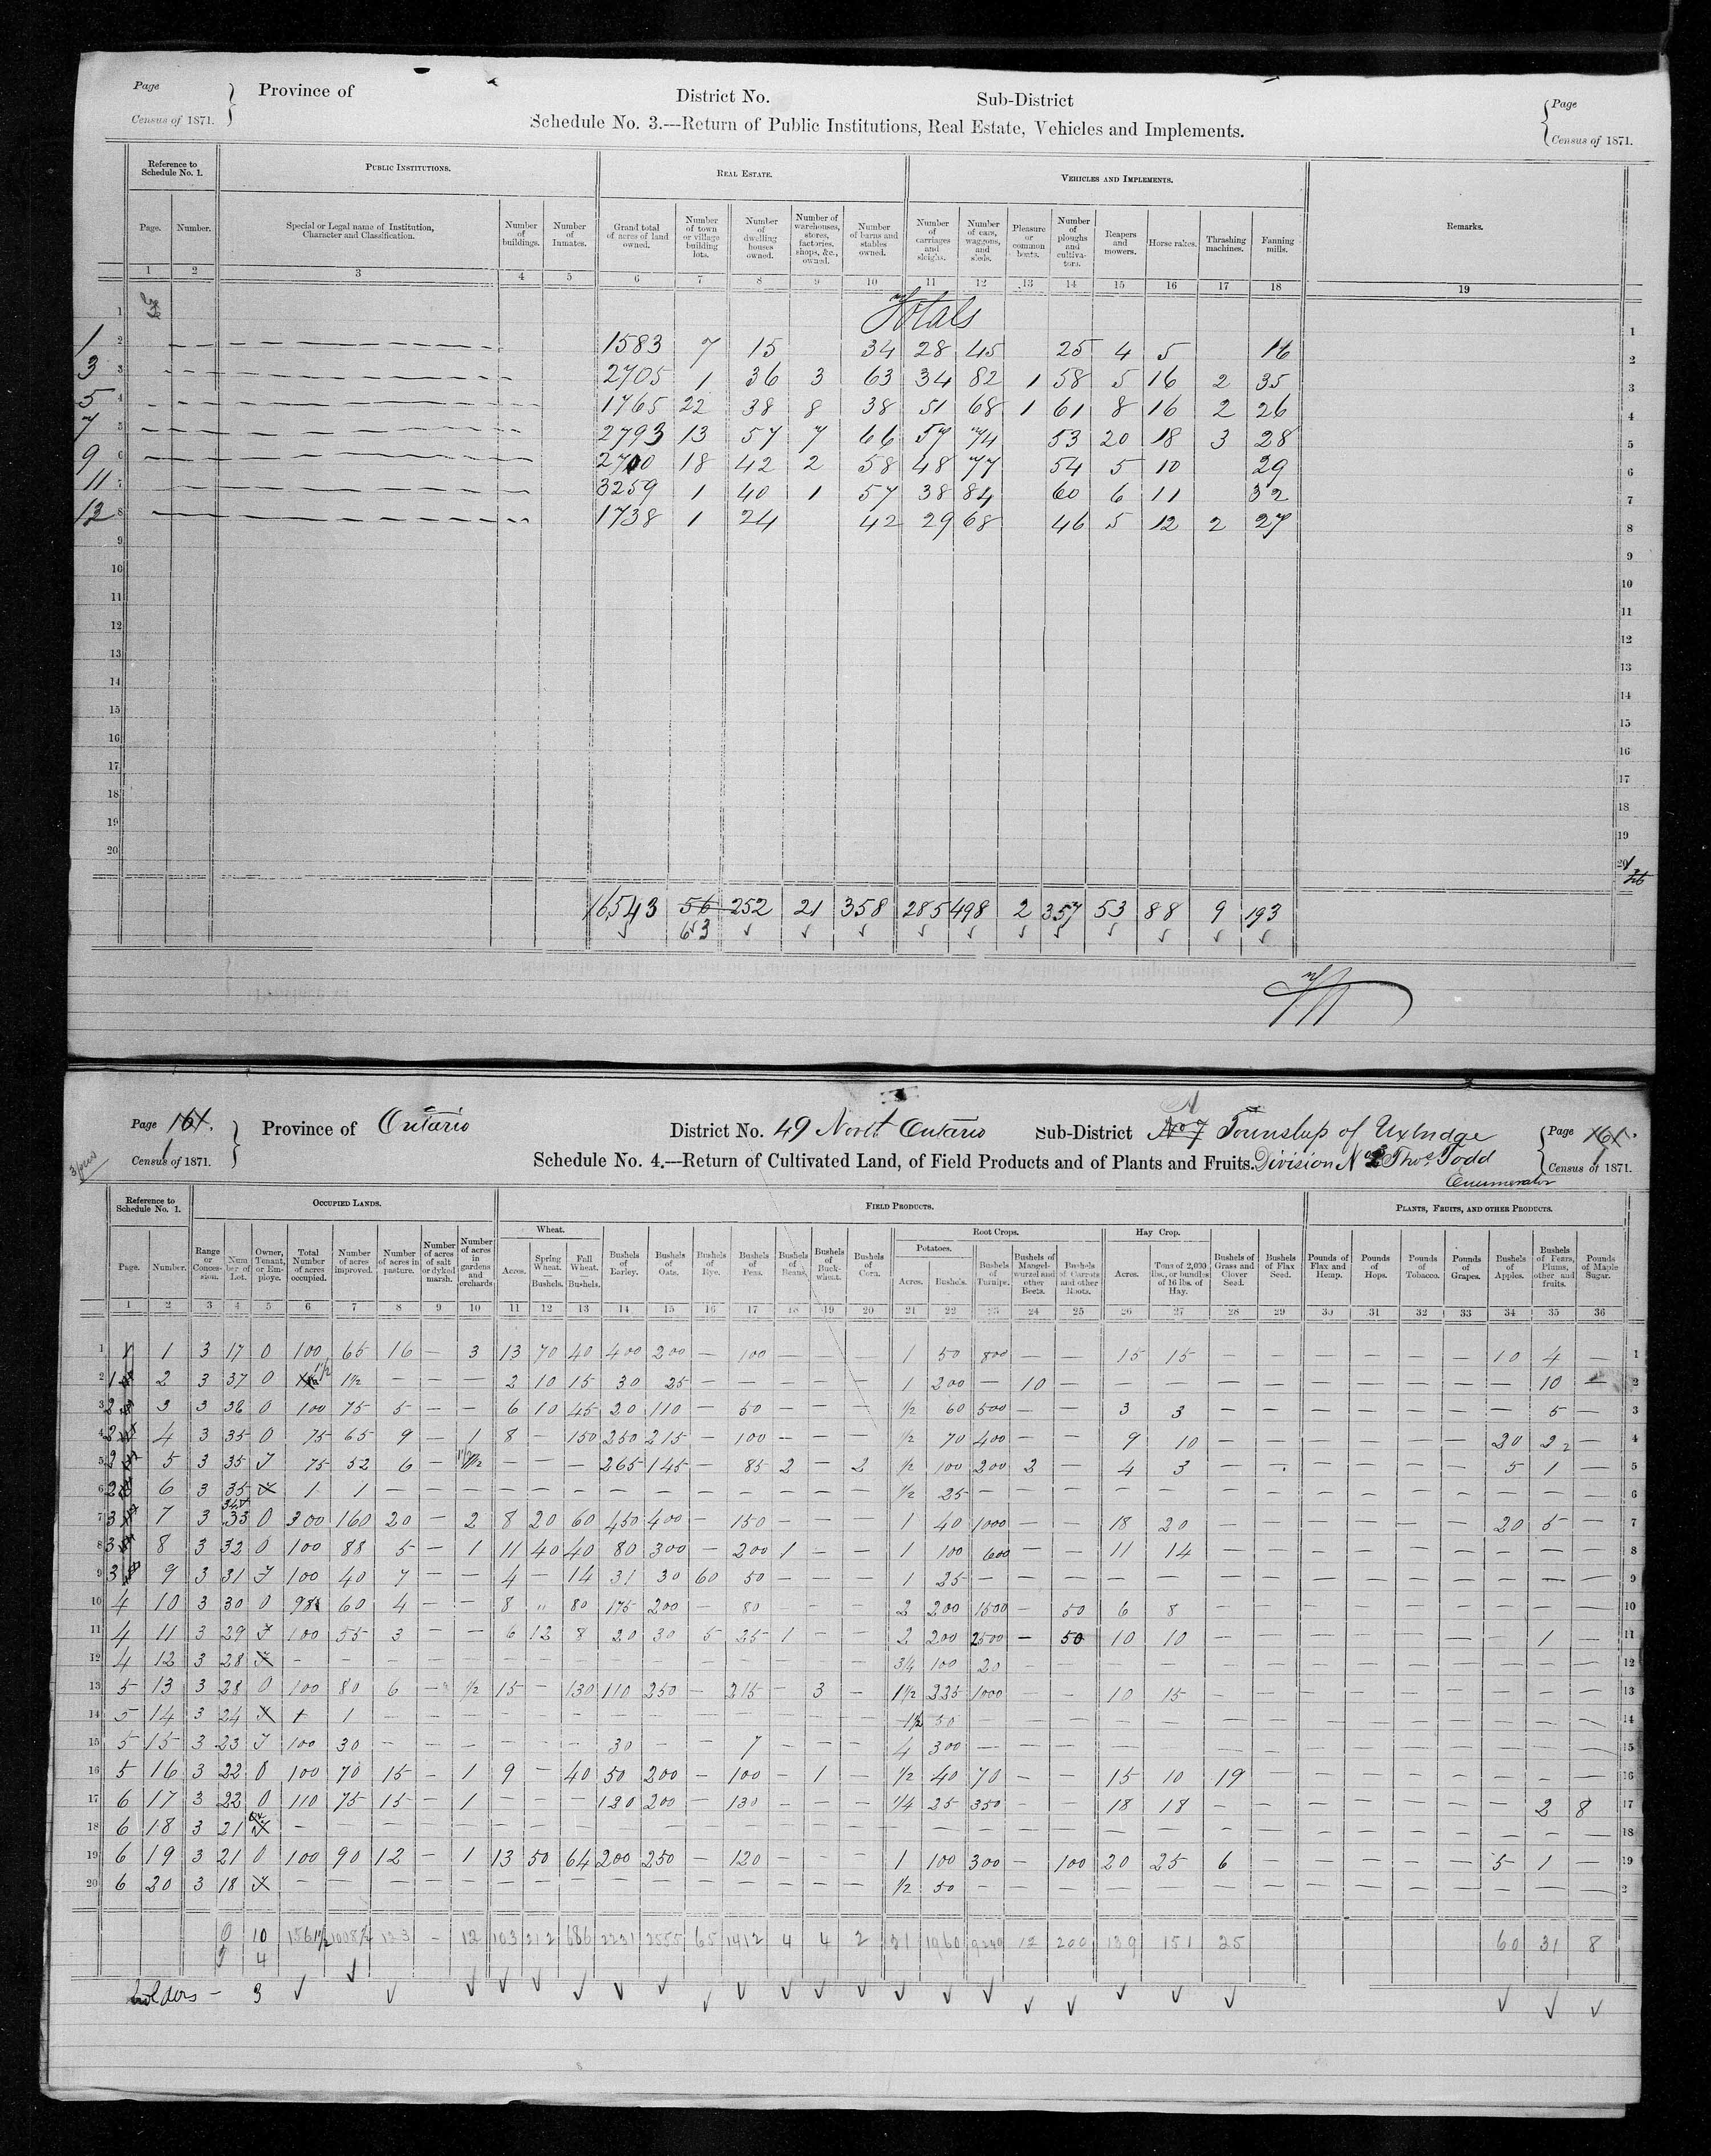 Title: Census of Canada, 1871 - Mikan Number: 142105 - Microform: c-9975